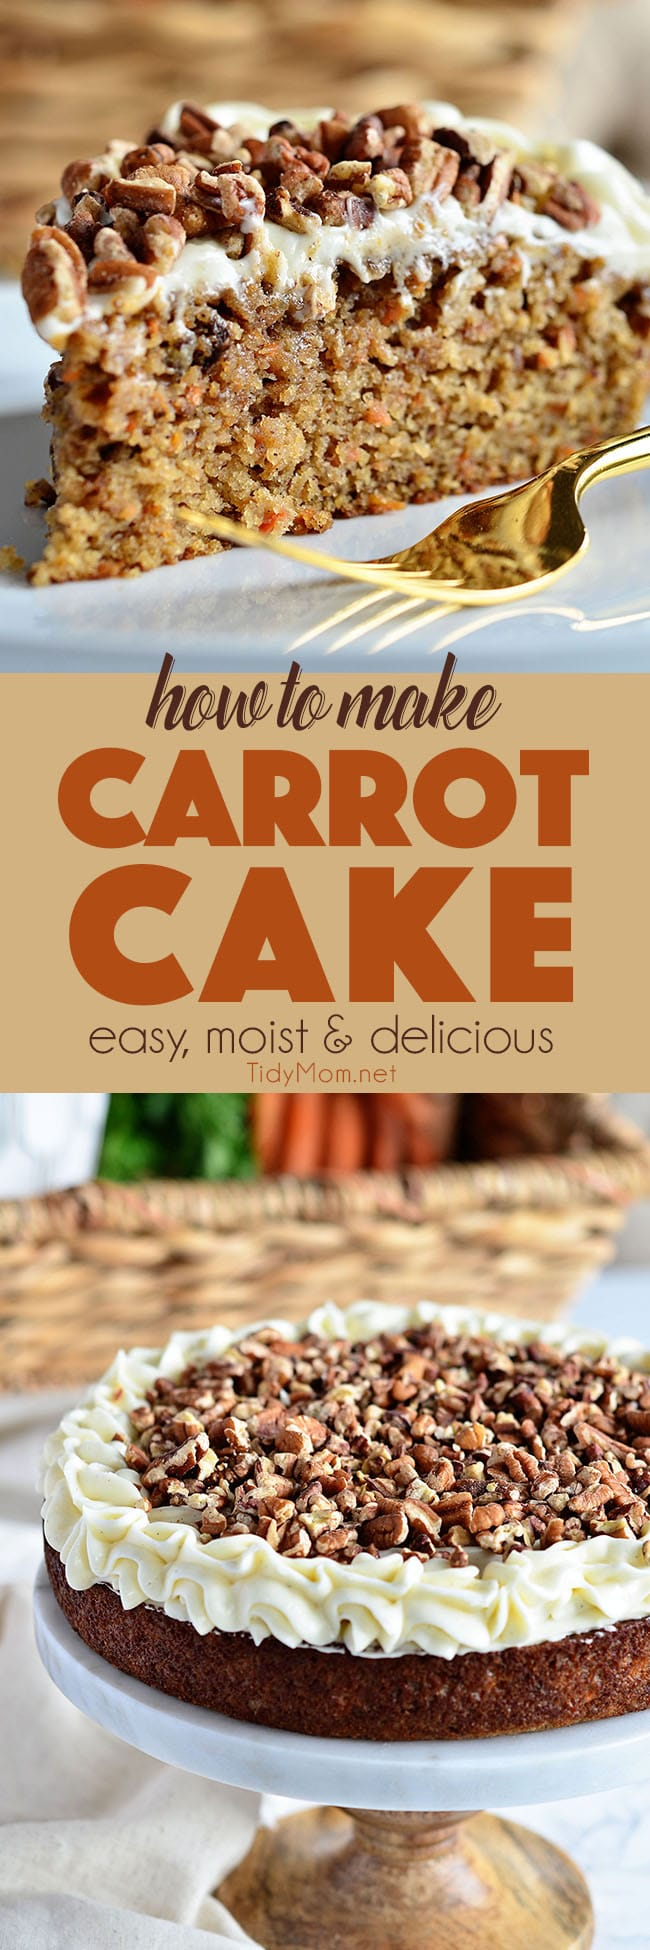 Get all the TIPS on how to make THE BEST HOMEMADE CARROT CAKE. An incredibly moist carrot cake recipe with an ultra-creamy cream cheese frosting. Carrot Cake Recipe + video at TidyMom.net #carrotcake #easter #spring #cakerecipe #dessert #video #recipevideo